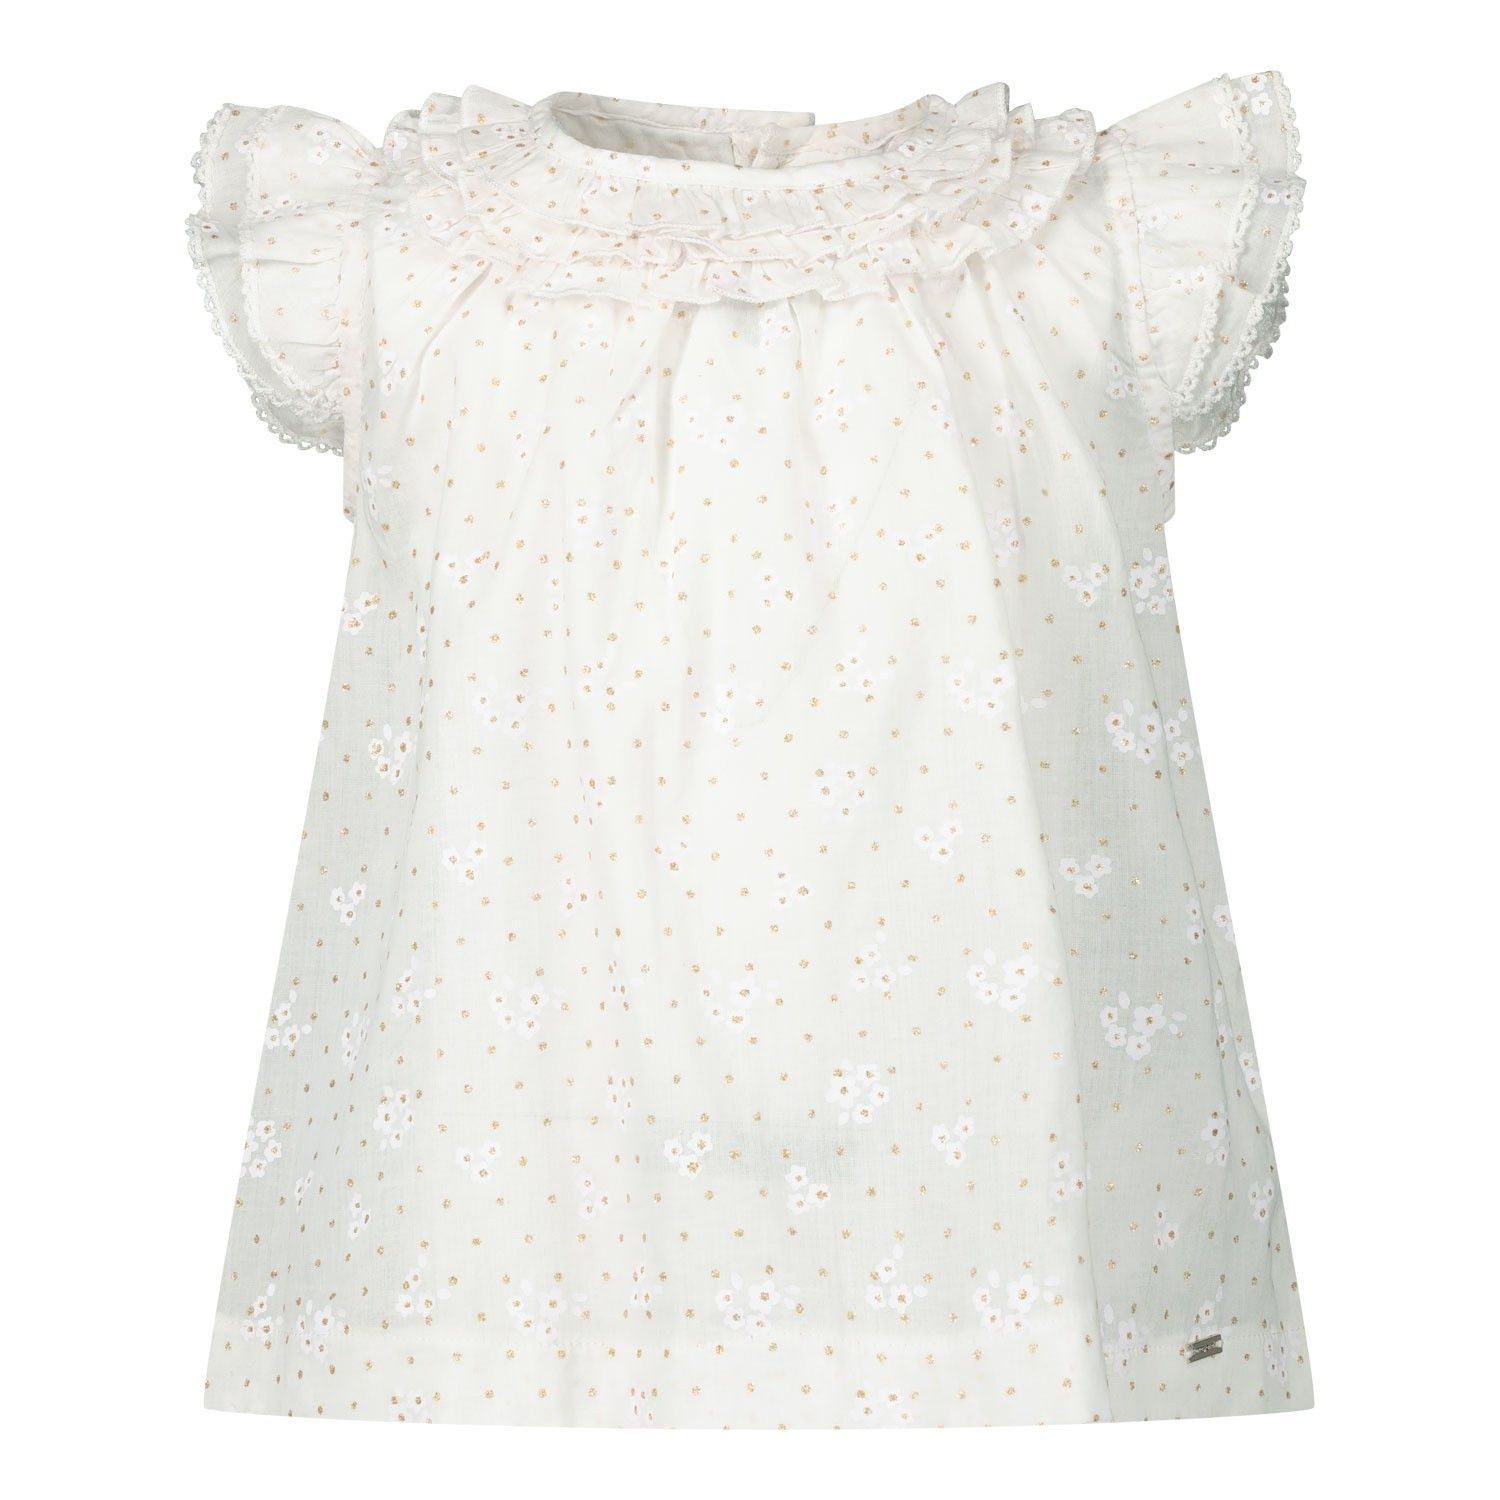 Picture of Mayoral 1169 baby blouse white